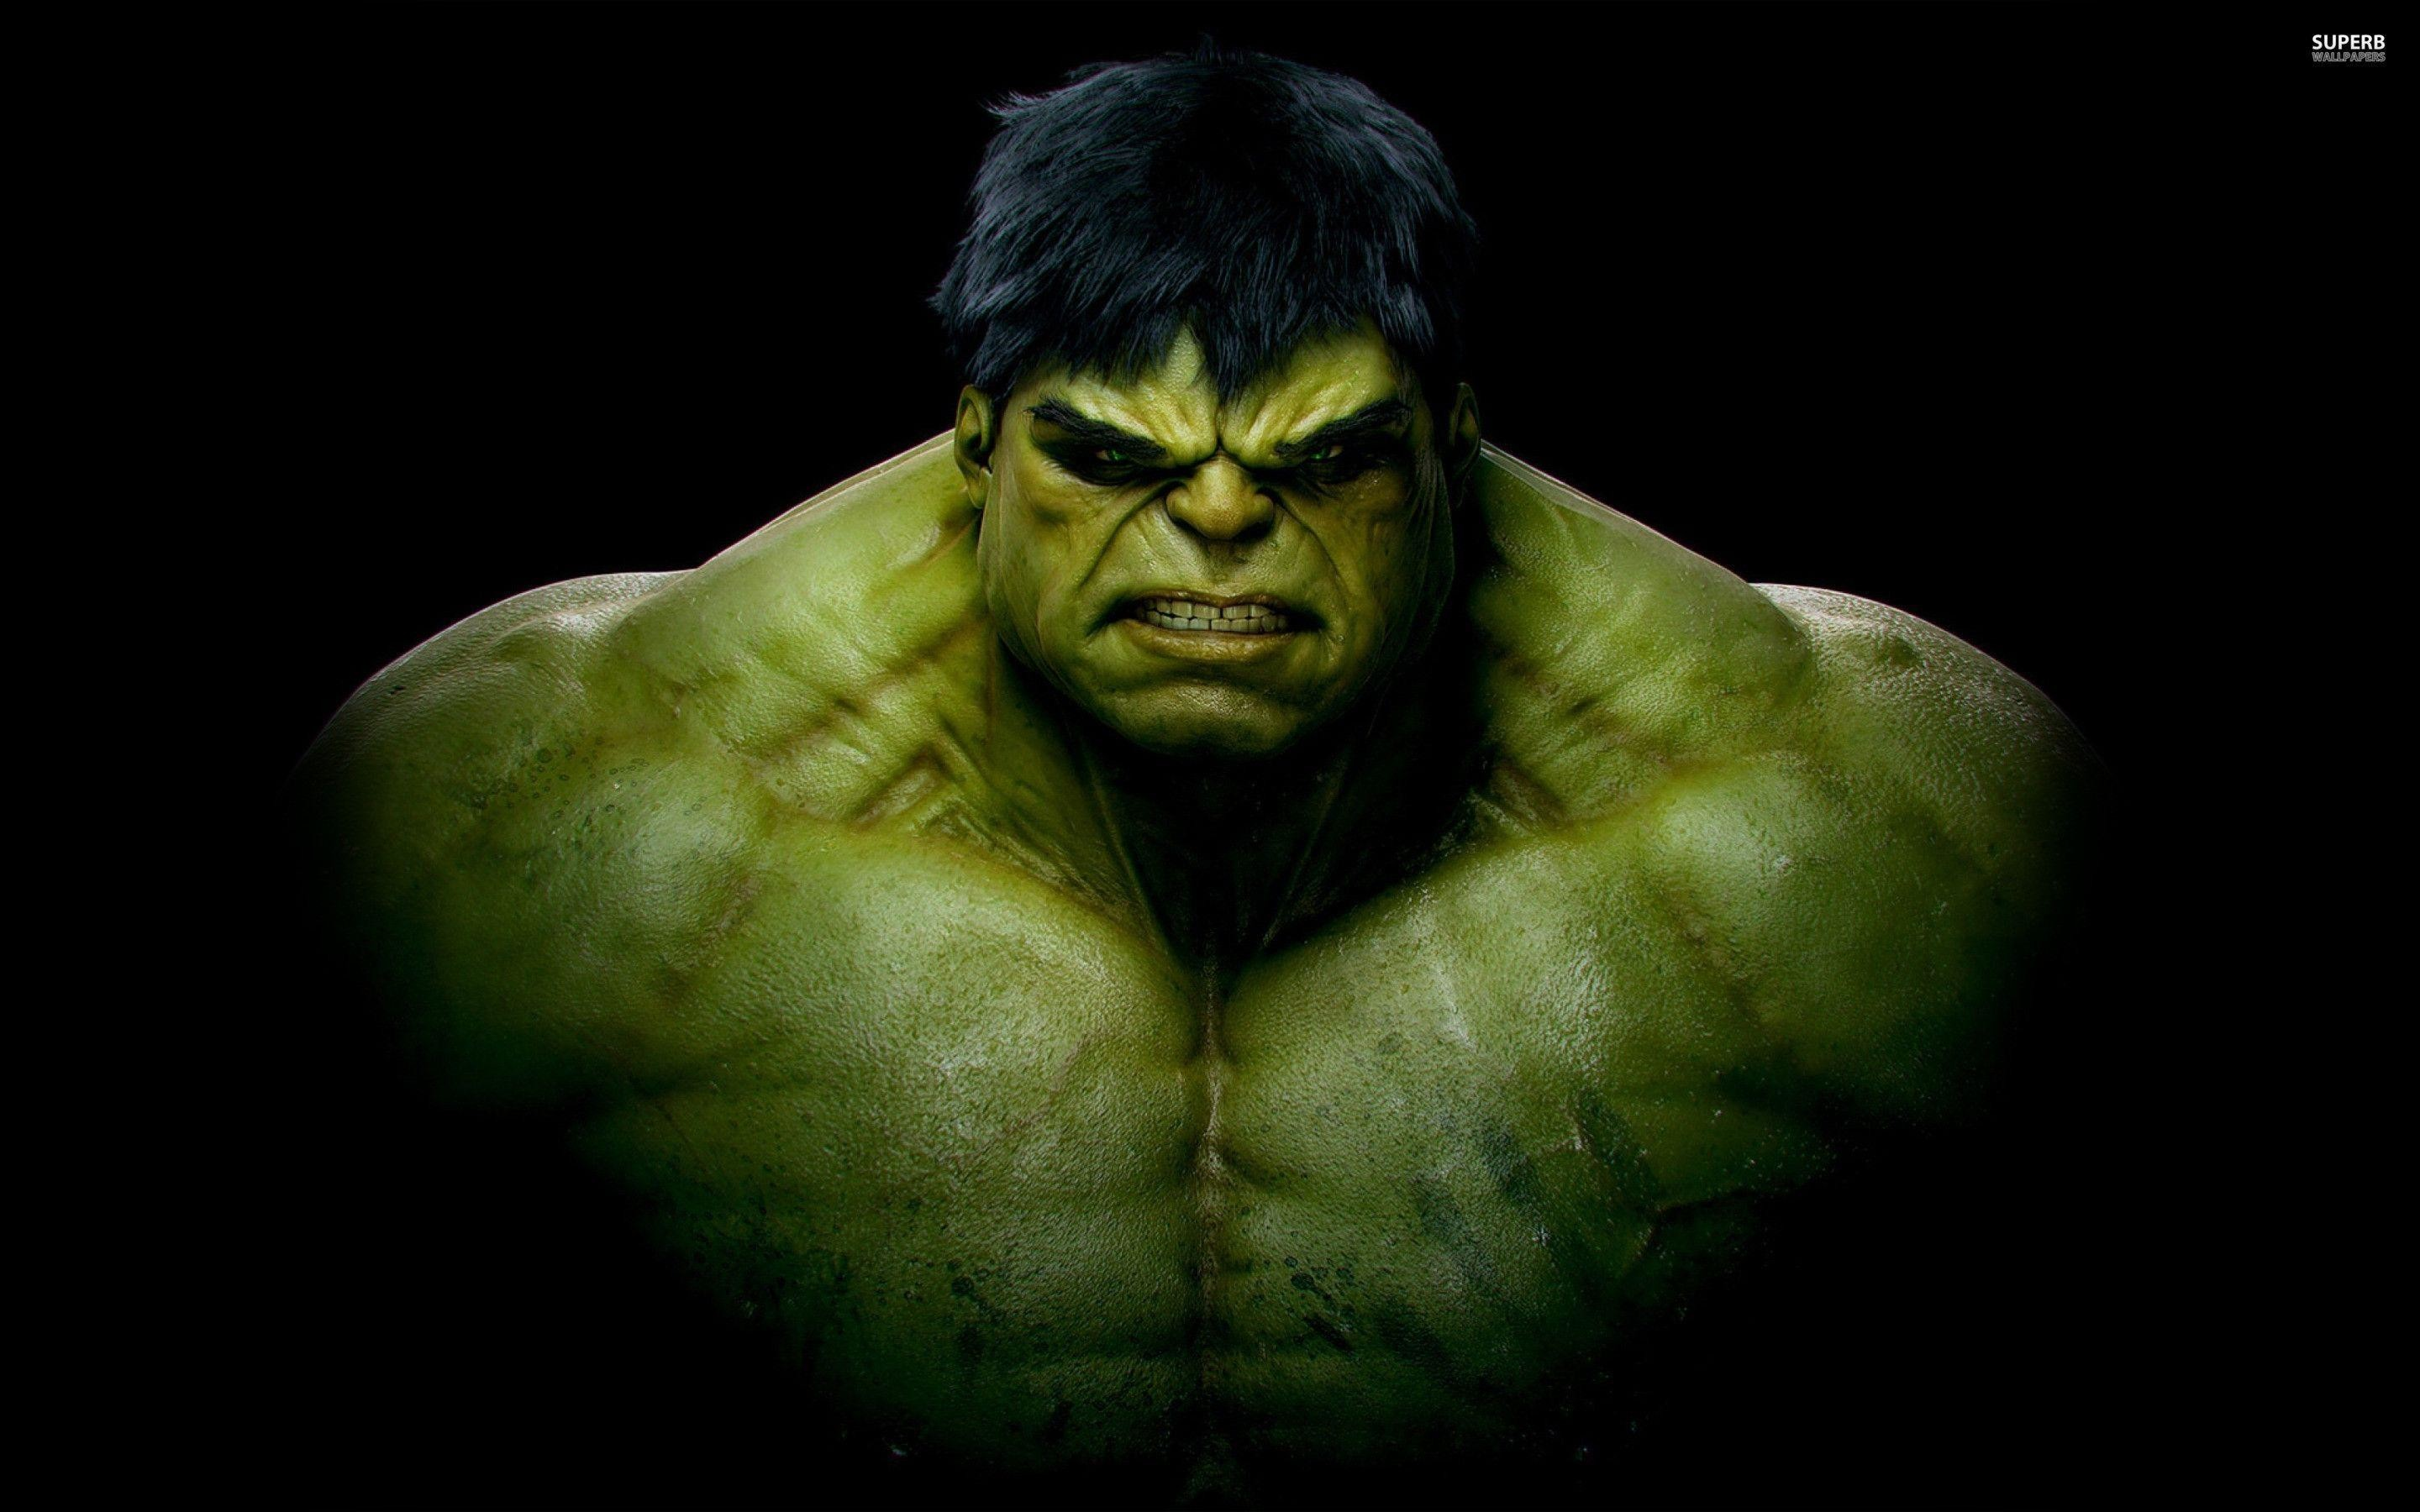 The Hulk Wallpaper 64 images 2880x1800